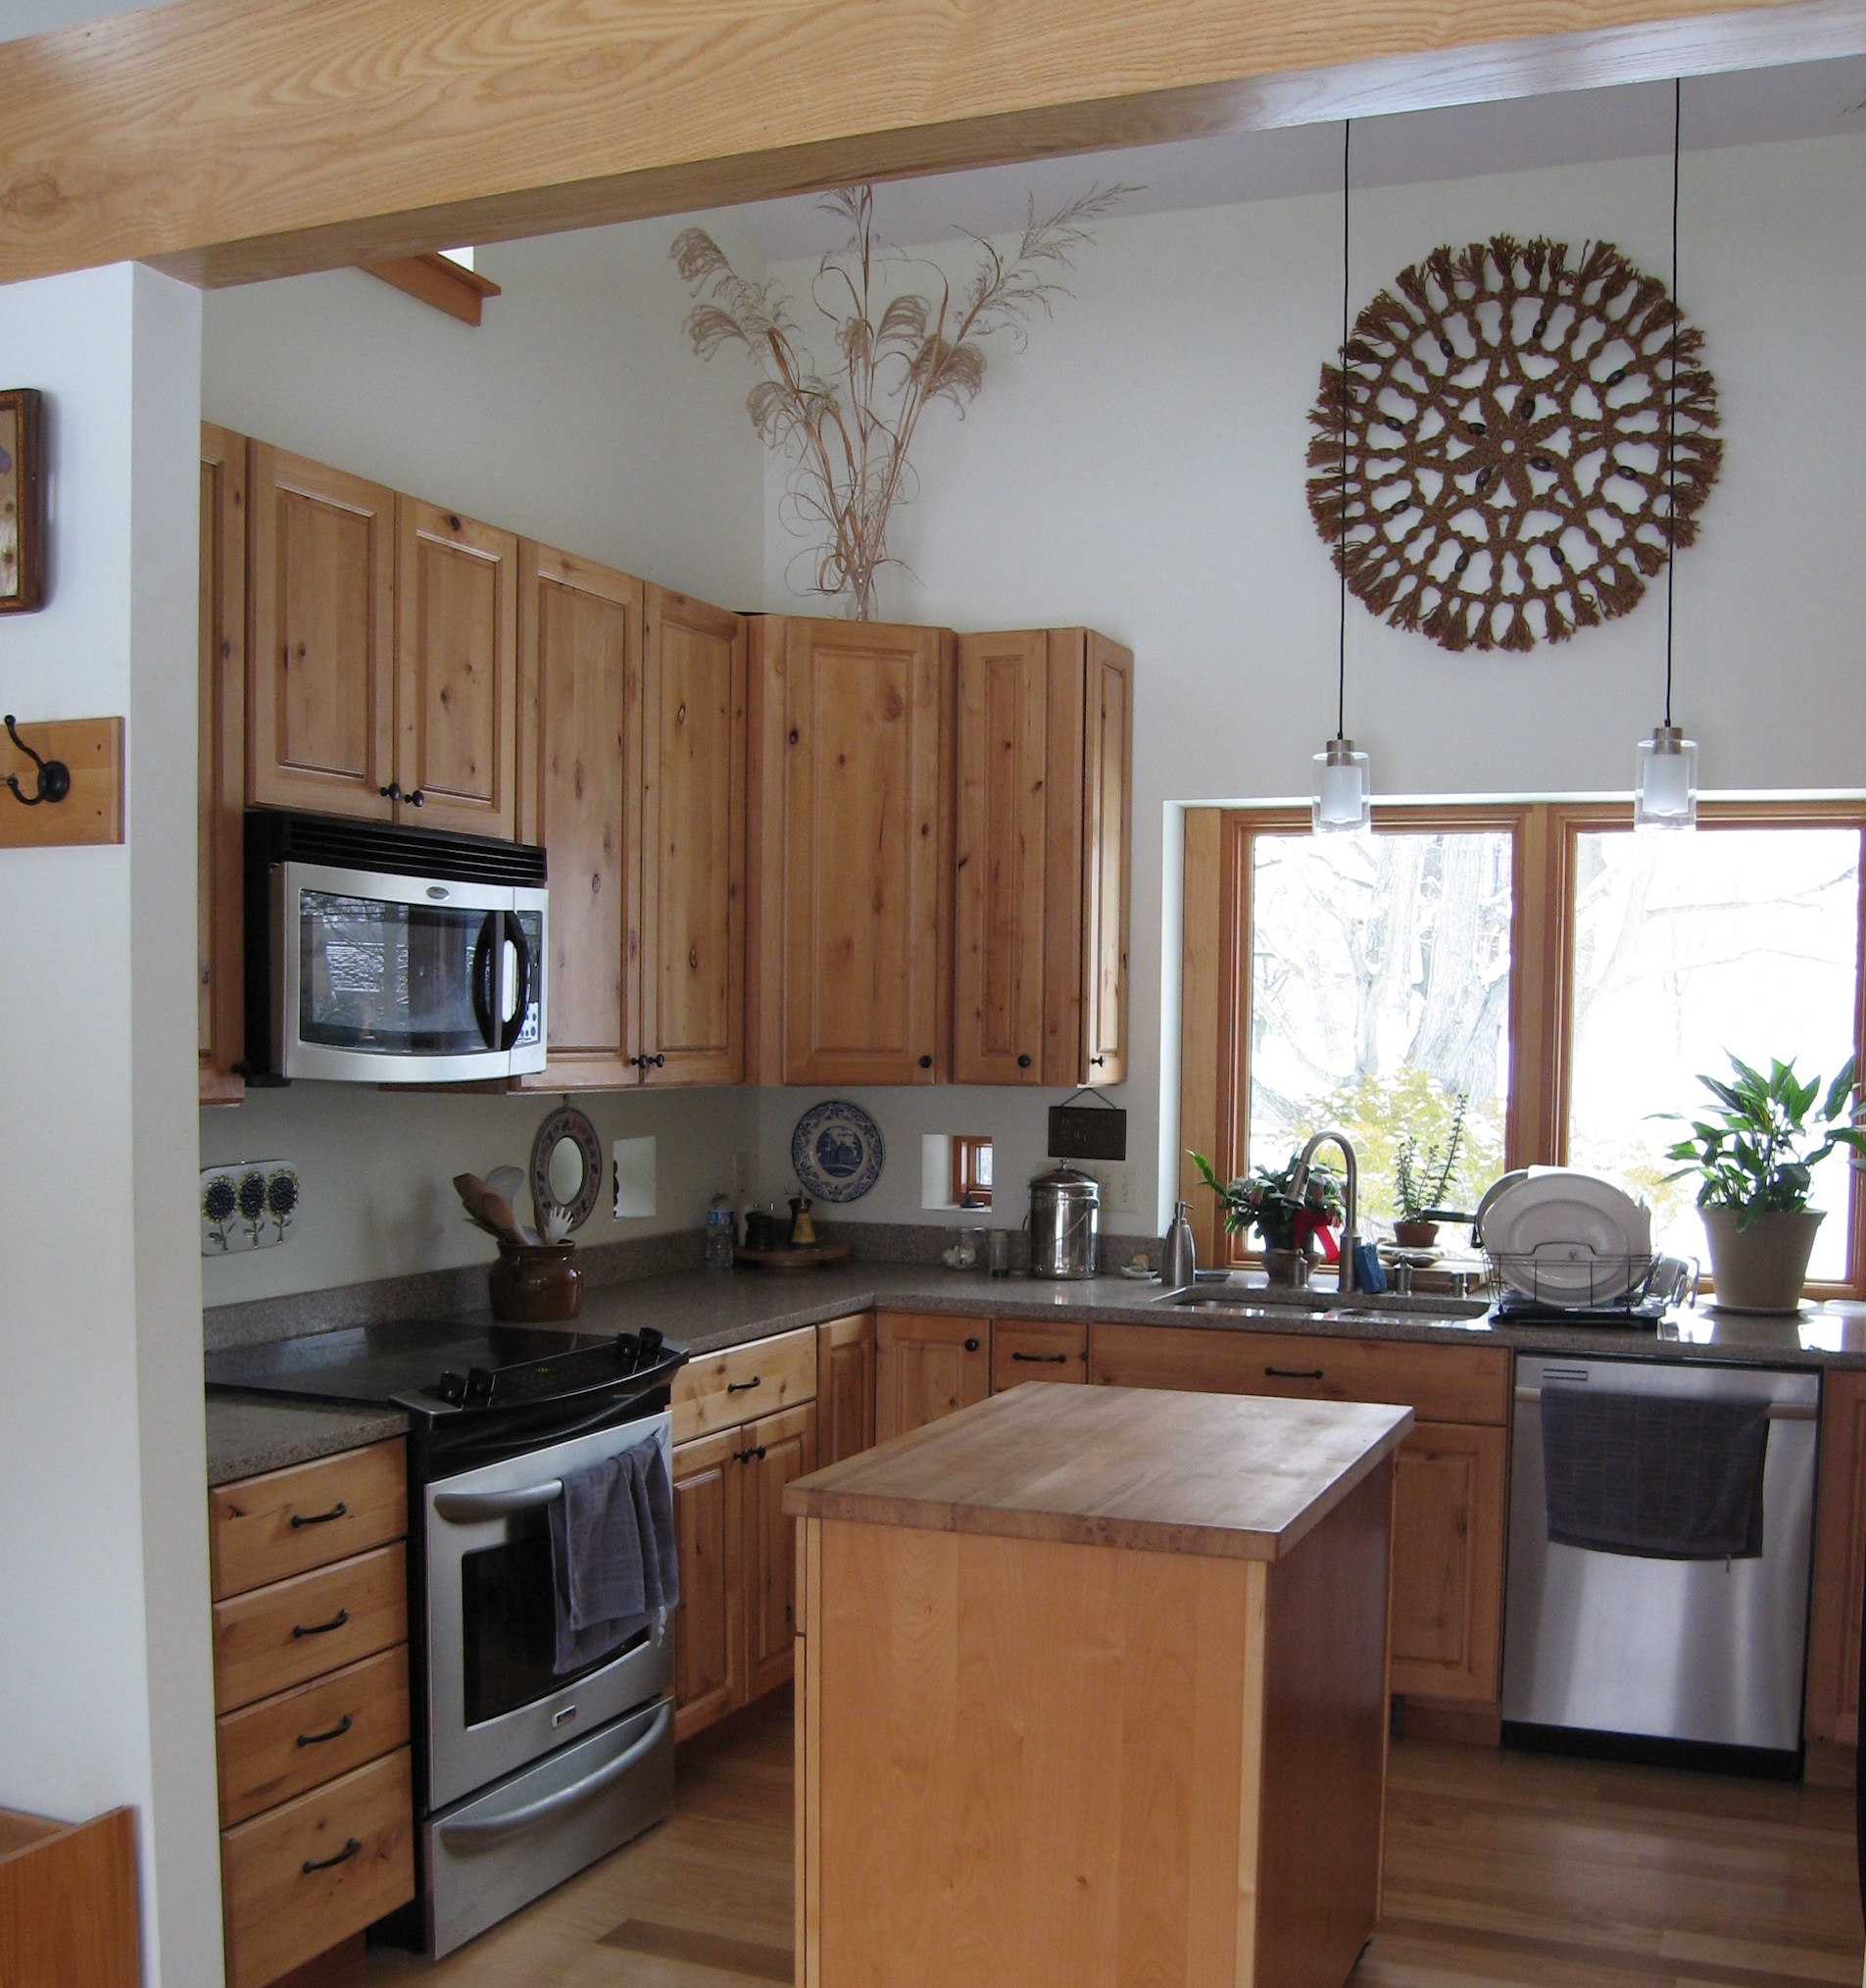 Trail Magic kitchen; a positive energy home in Oberlin OH.